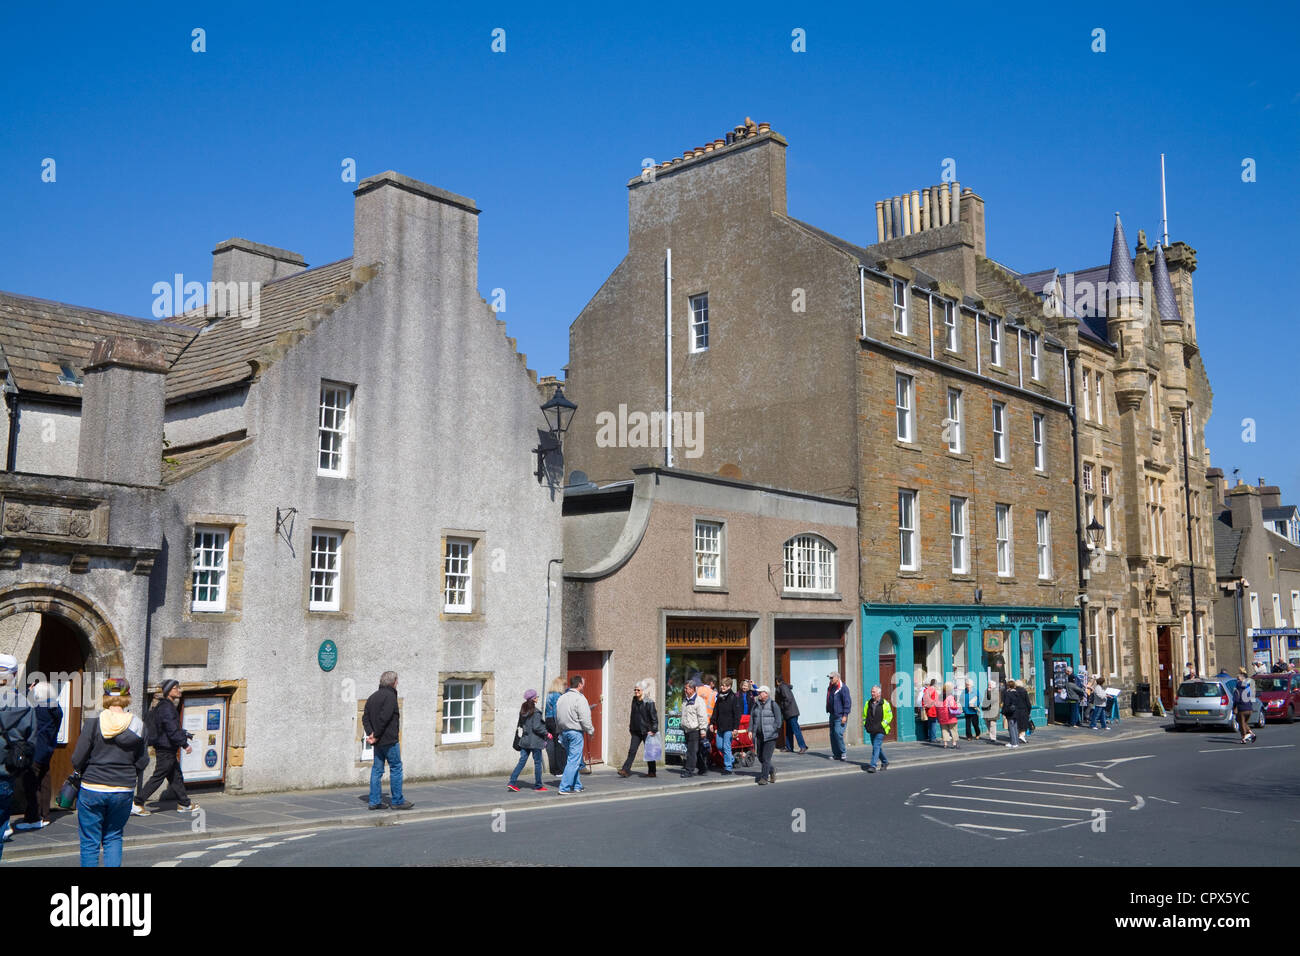 Kirkwall Orkney Islands UK View down Broad Street with Orkney Museum and old Town Hall buildings - Stock Image